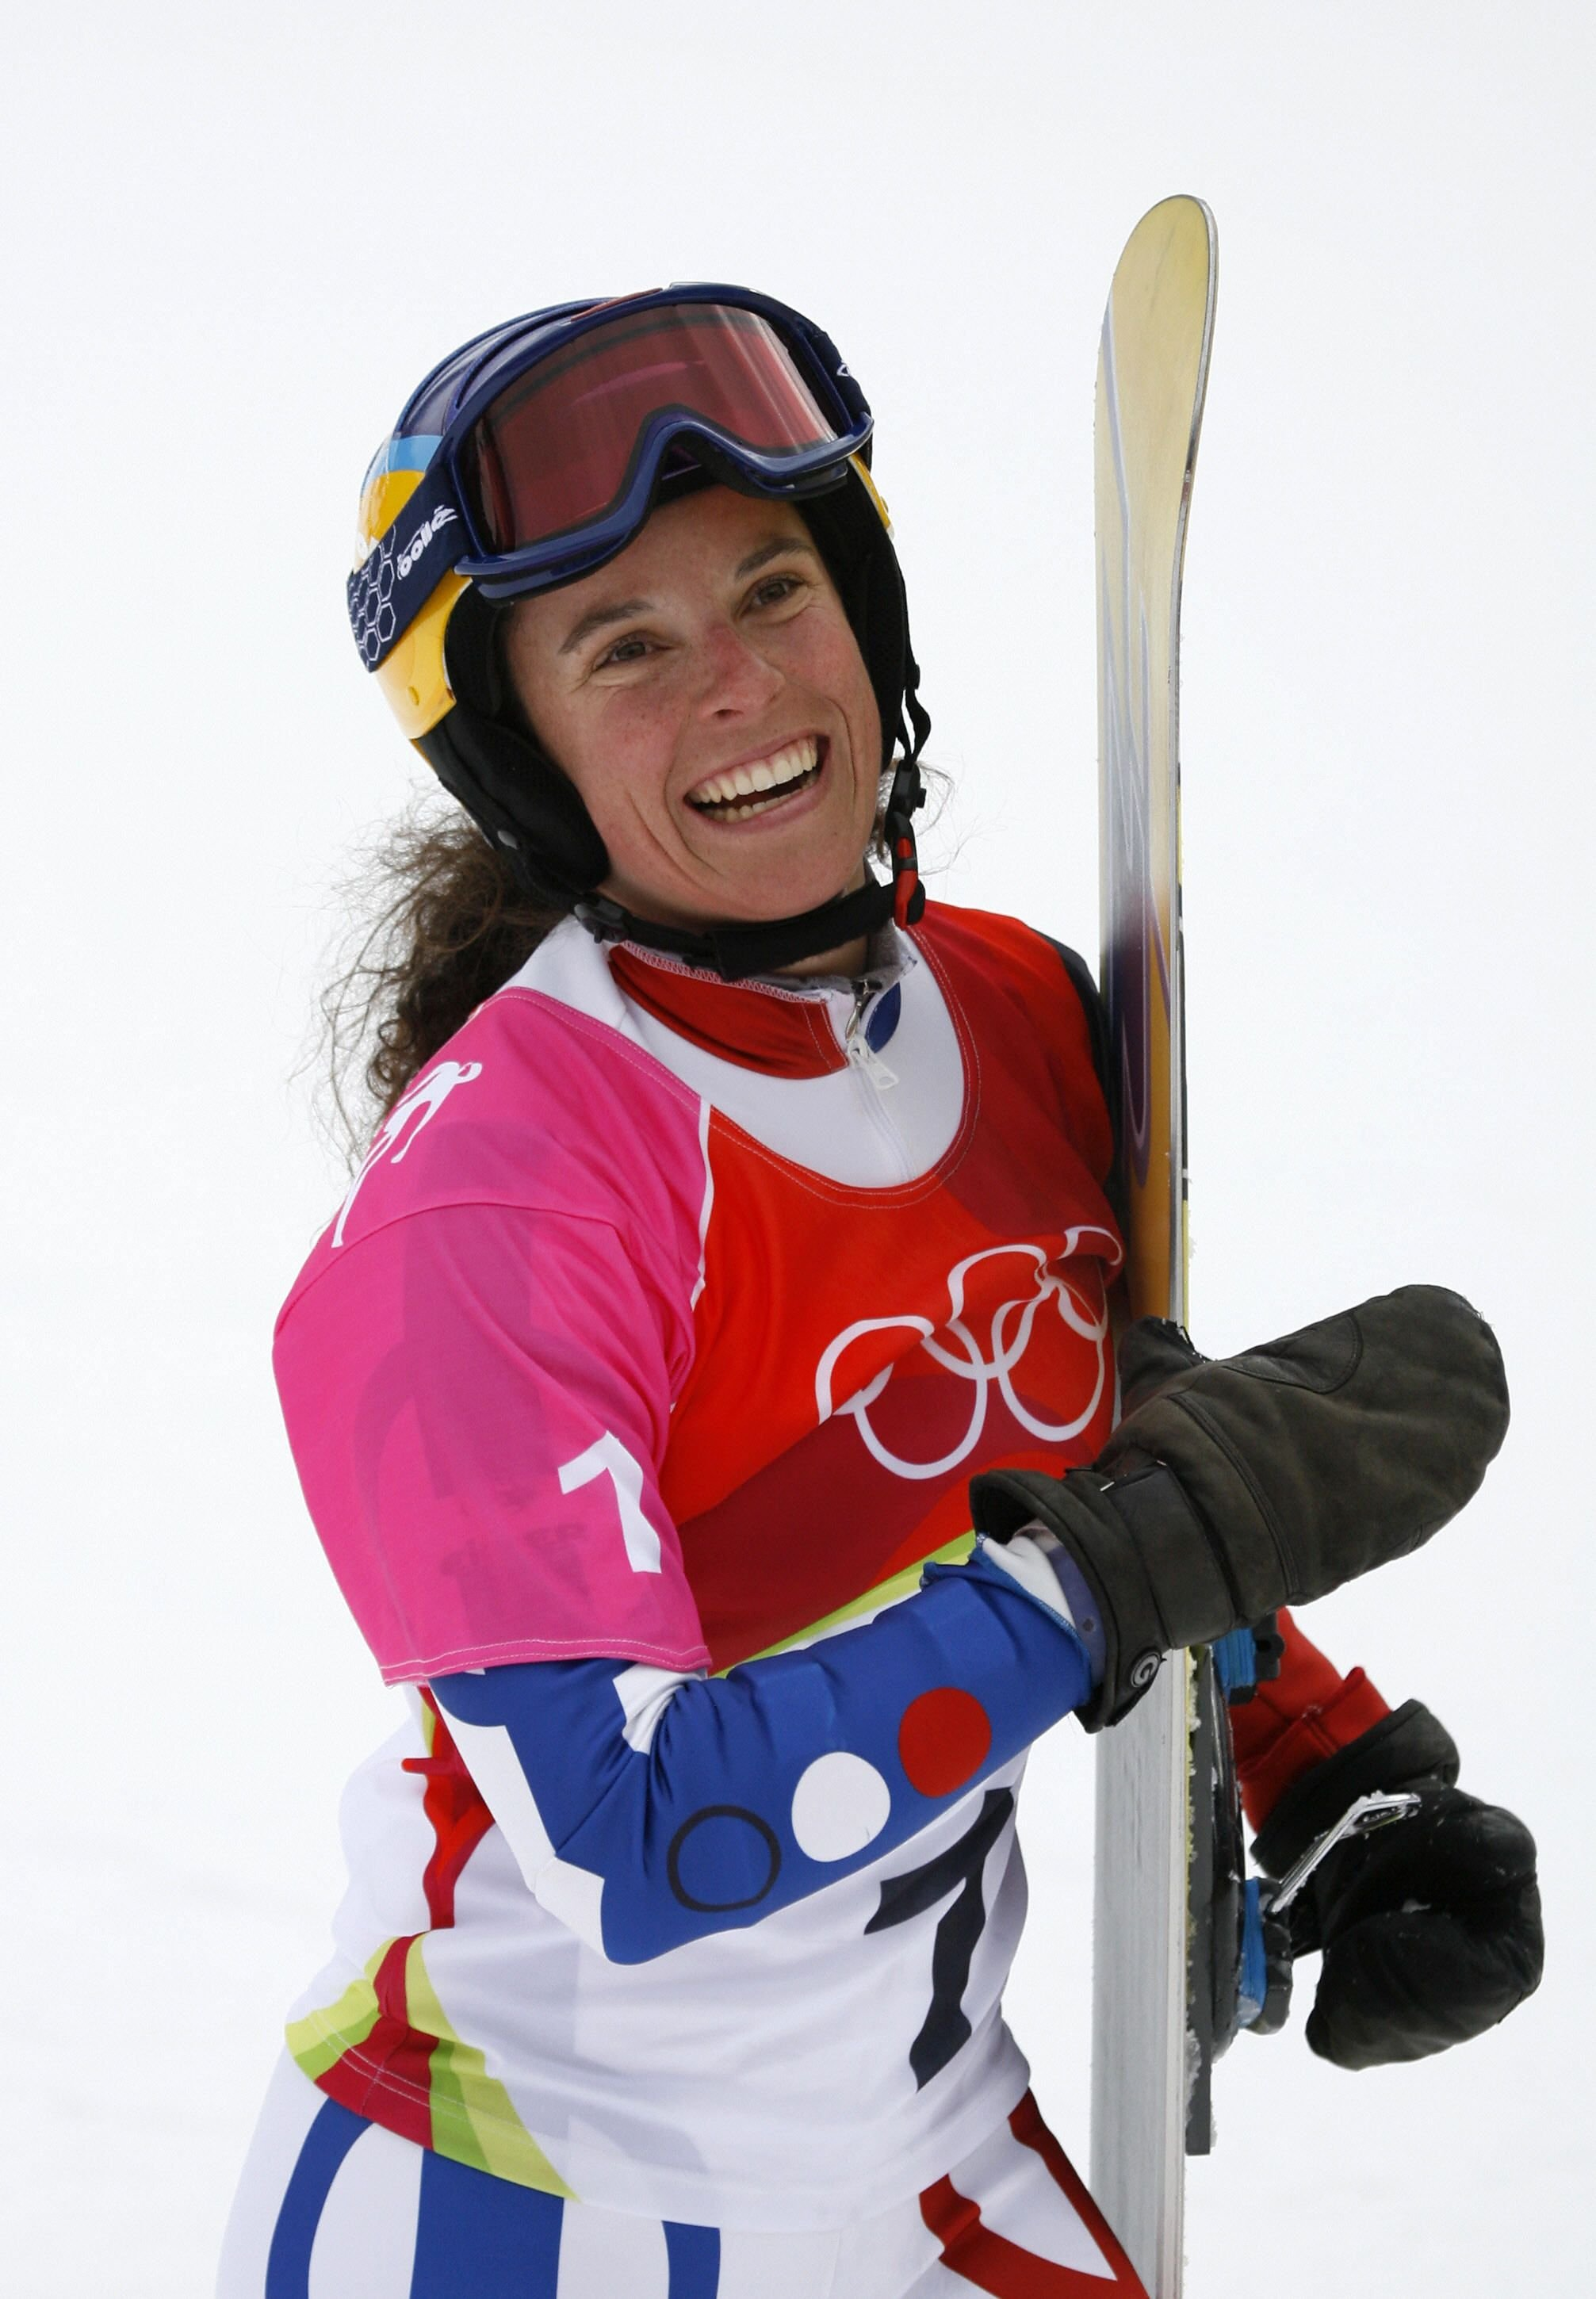 Julie Pomagalski from France after competing on 23 February, 2006   Getty Images